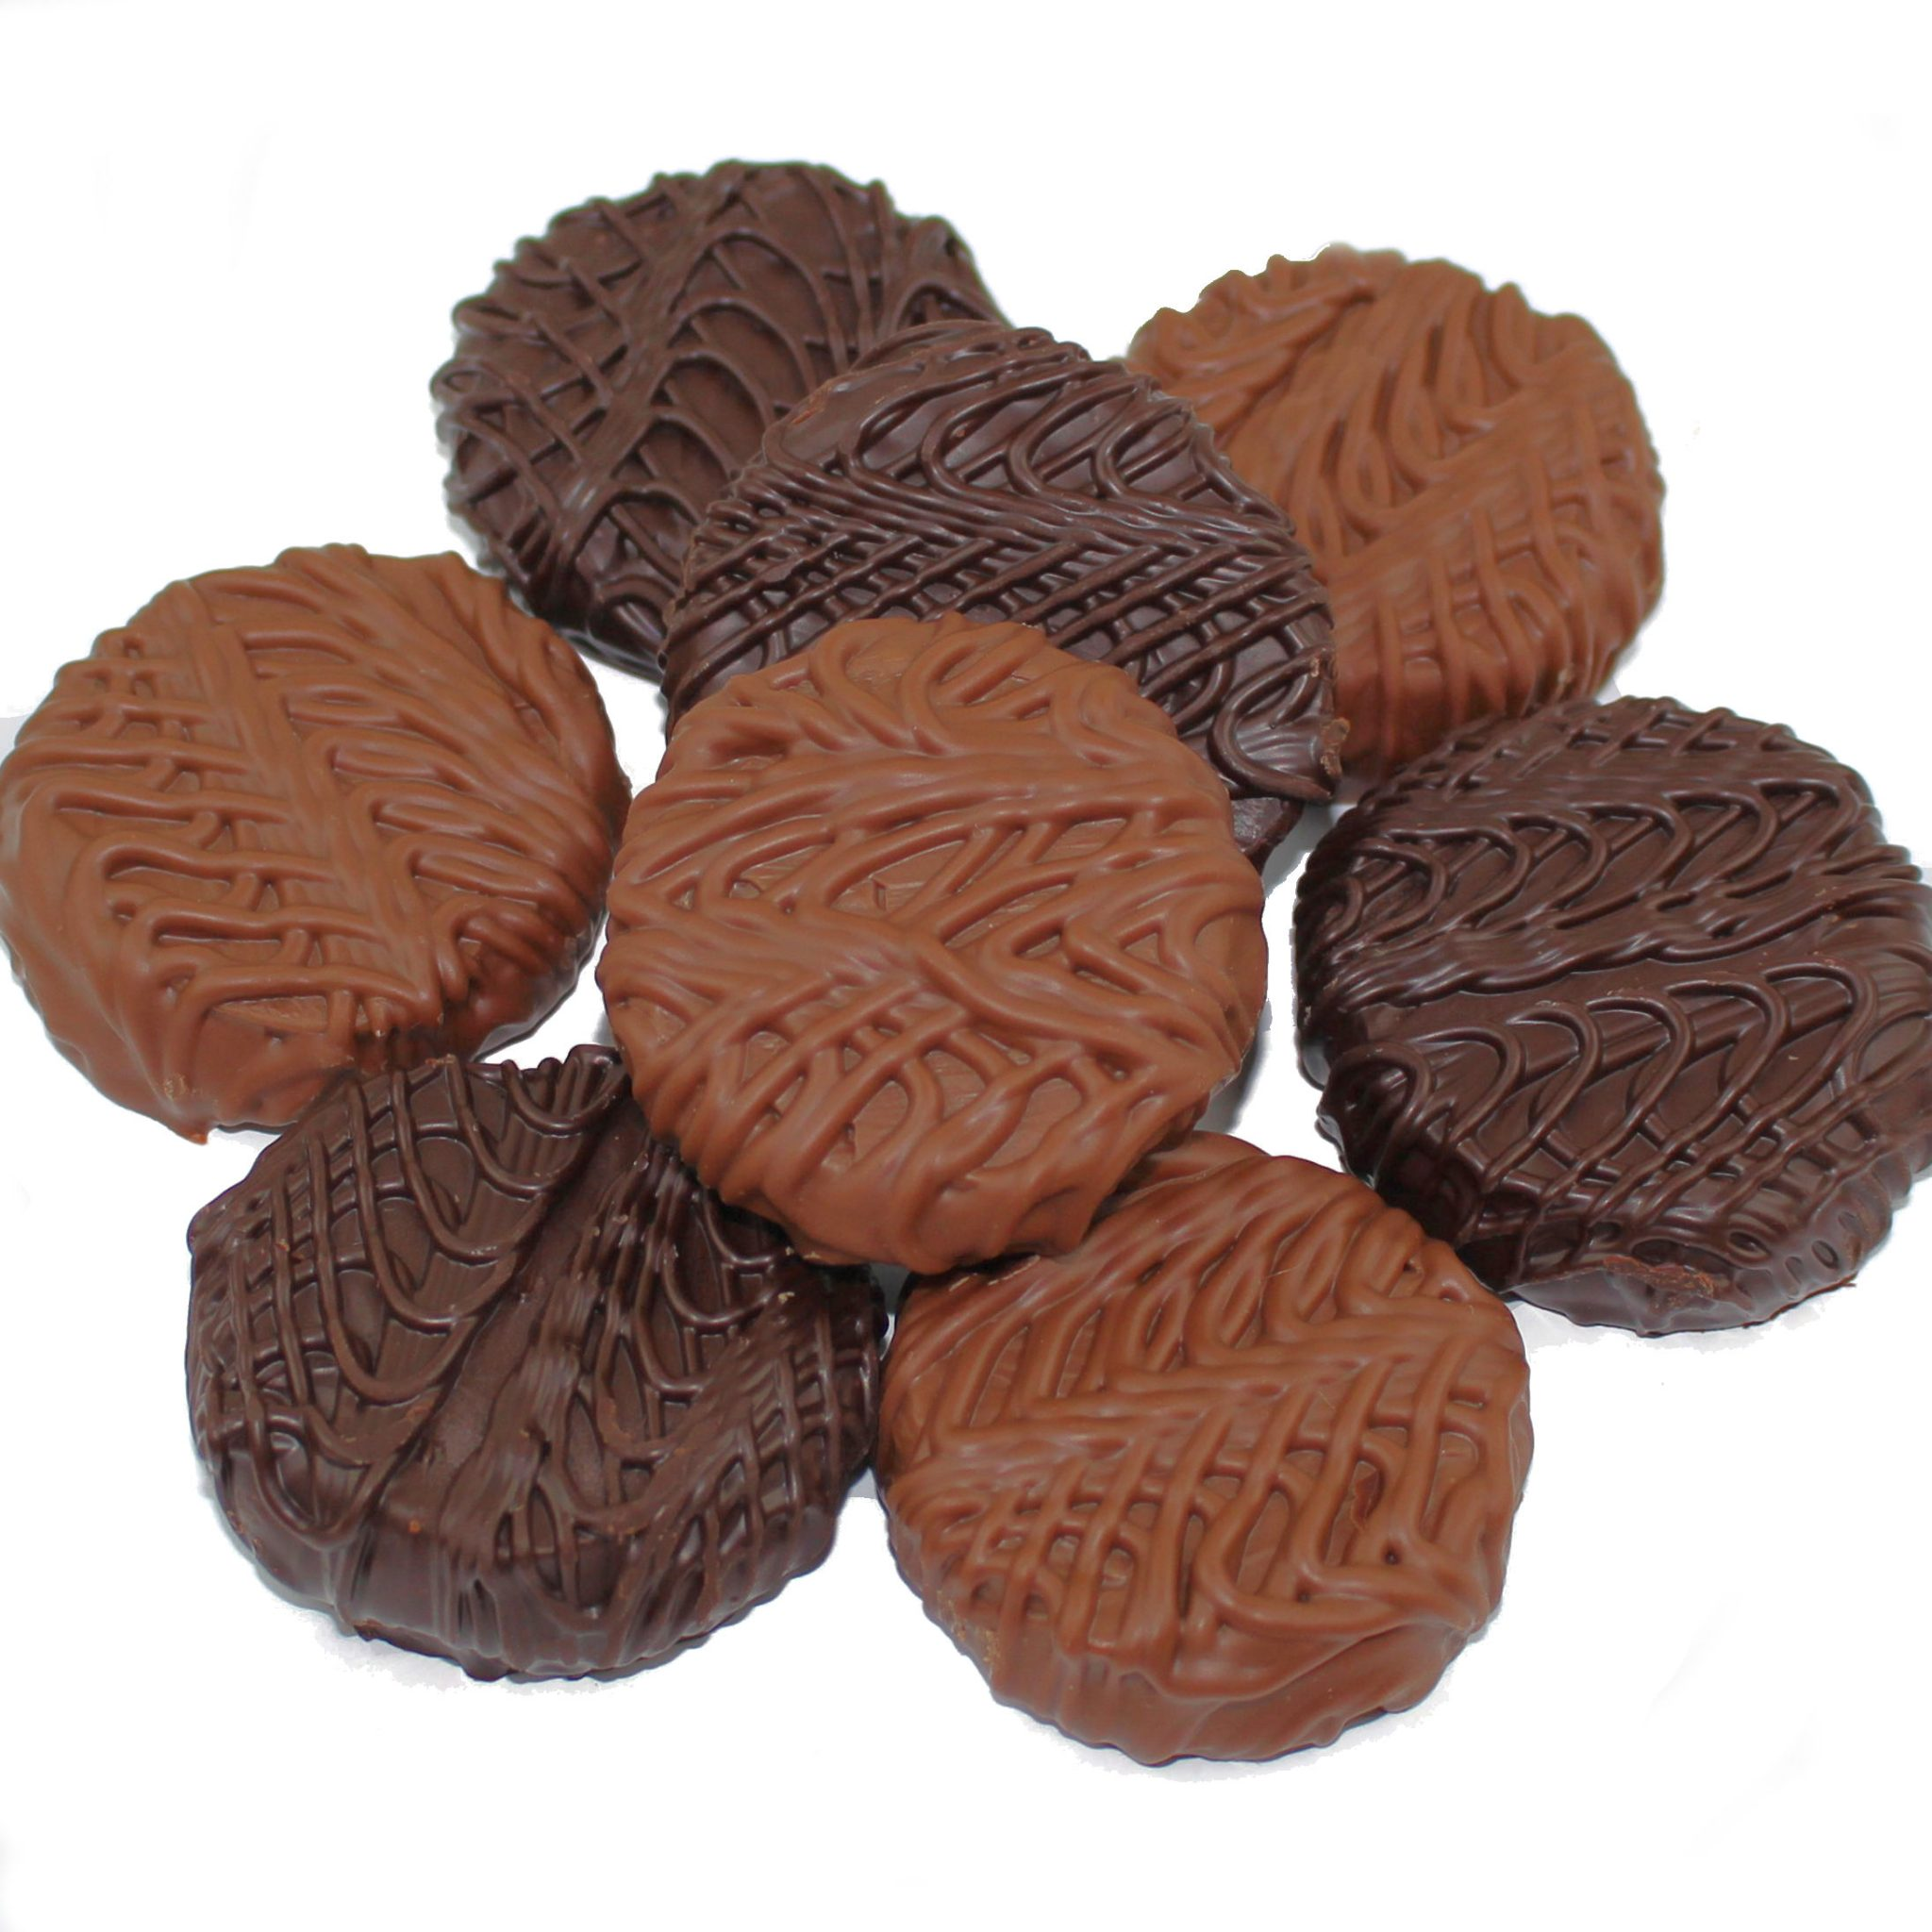 Chocolate Covered Oreos - Wockenfuss Candies